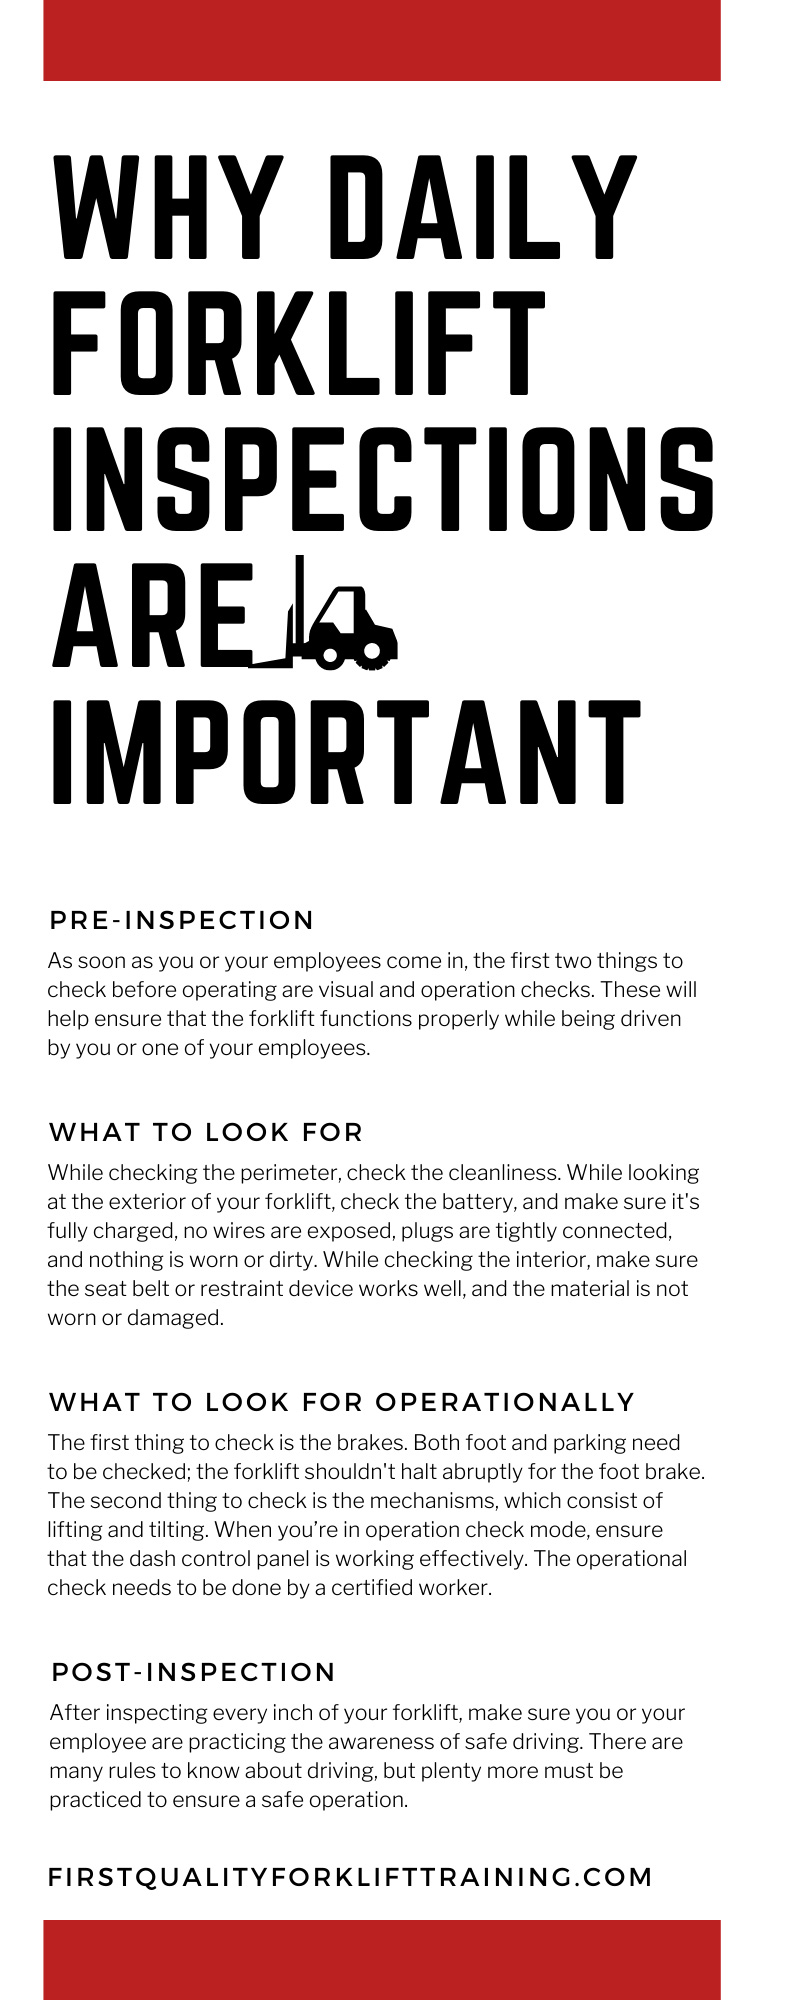 Why Daily Forklift Inspections Are Important